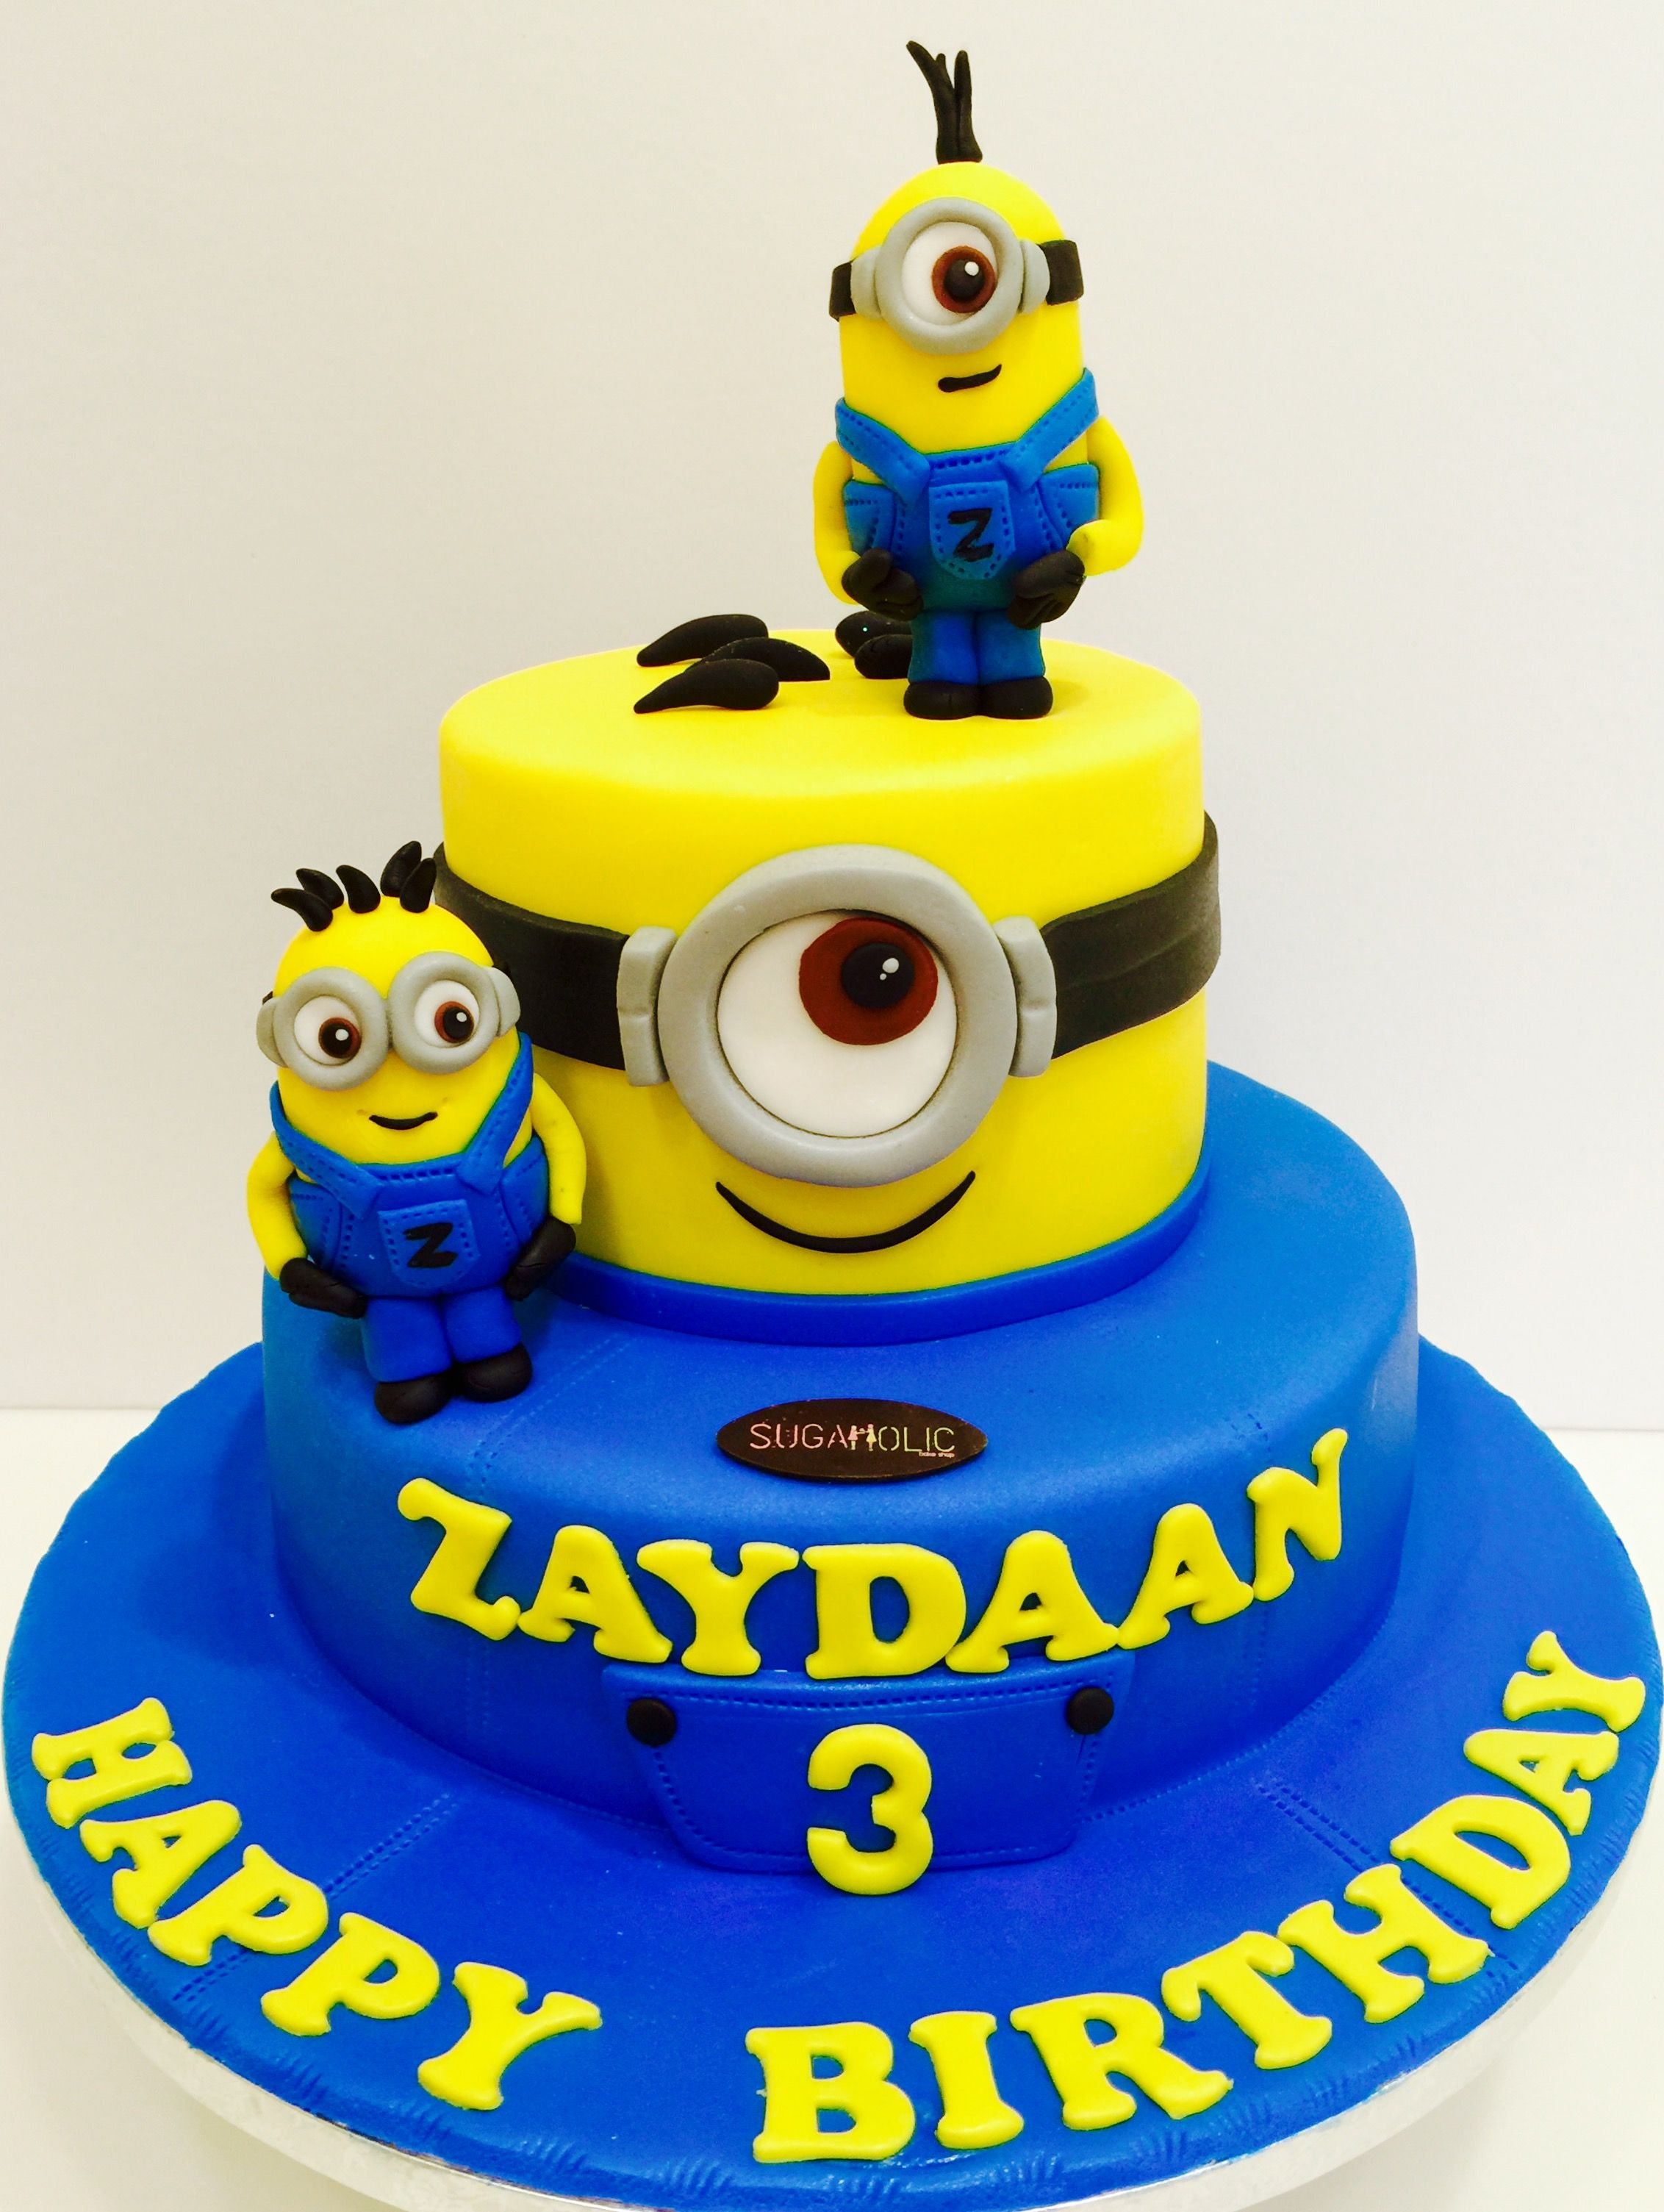 Customized Minion Cake